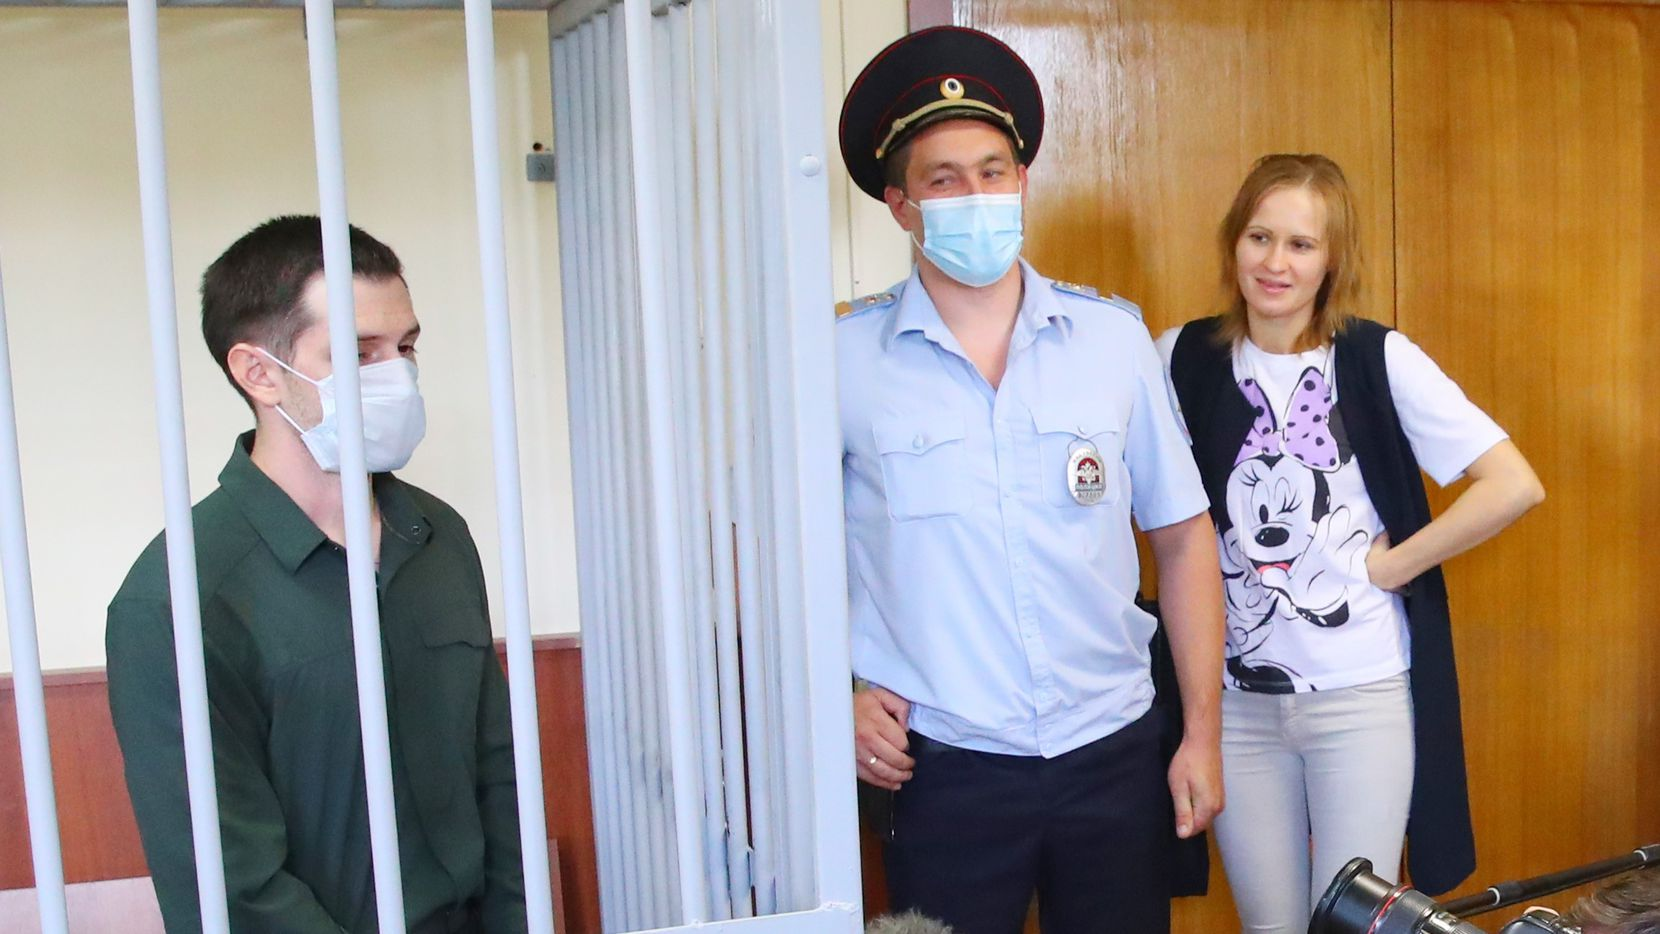 A former US Marine and University of North Texas student, Trevor Reed at his sentencing hearing July 30, 2020, at Moscow's Golovinsky District Court. The court found him guilty and sentenced him to 9 years in a prison colony. Reed, who arrived in Russia on a tourist visa, was arrested Aug. 16, 2019 after neighbors complained about a drunk man arguing with women. Authorities say he attacked officers as they took him to the police station, which he denies. U.S. officials and Reed's family and lawyer say the charges are baseless.